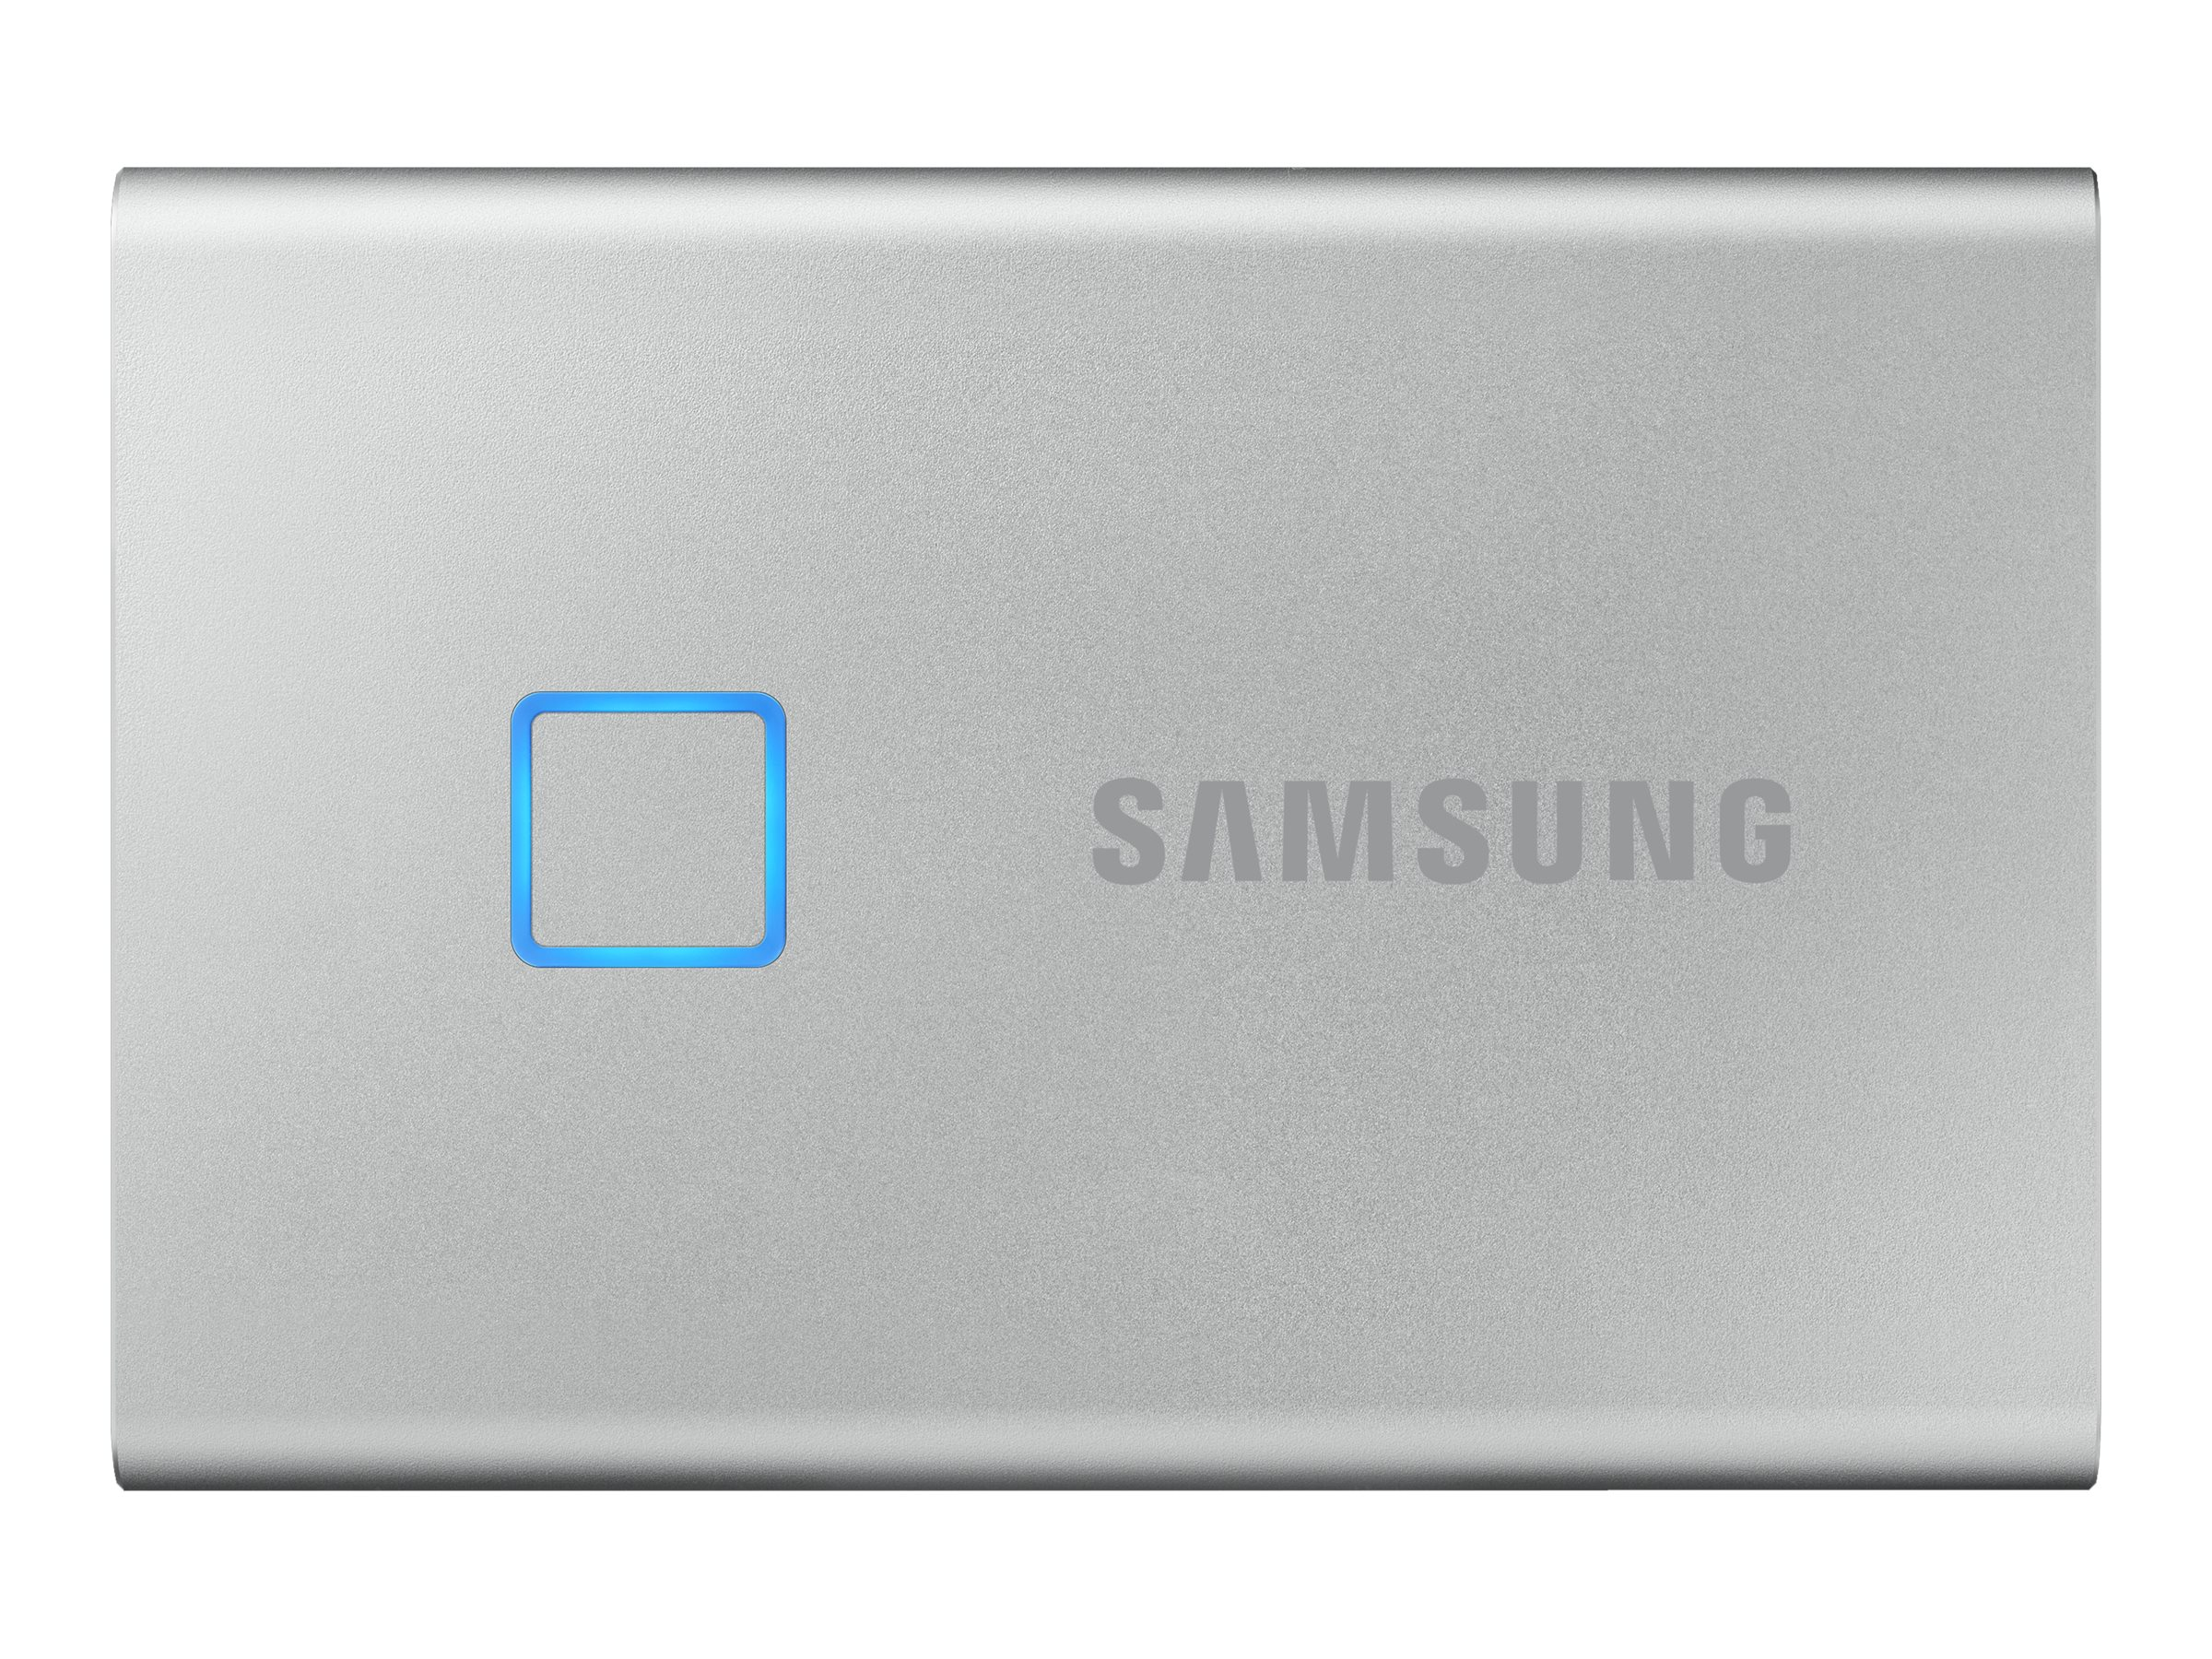 Samsung Portable SSD T7 Touch MU-PC2T0S - solid state drive - 2 TB - USB 3.2 Gen 2